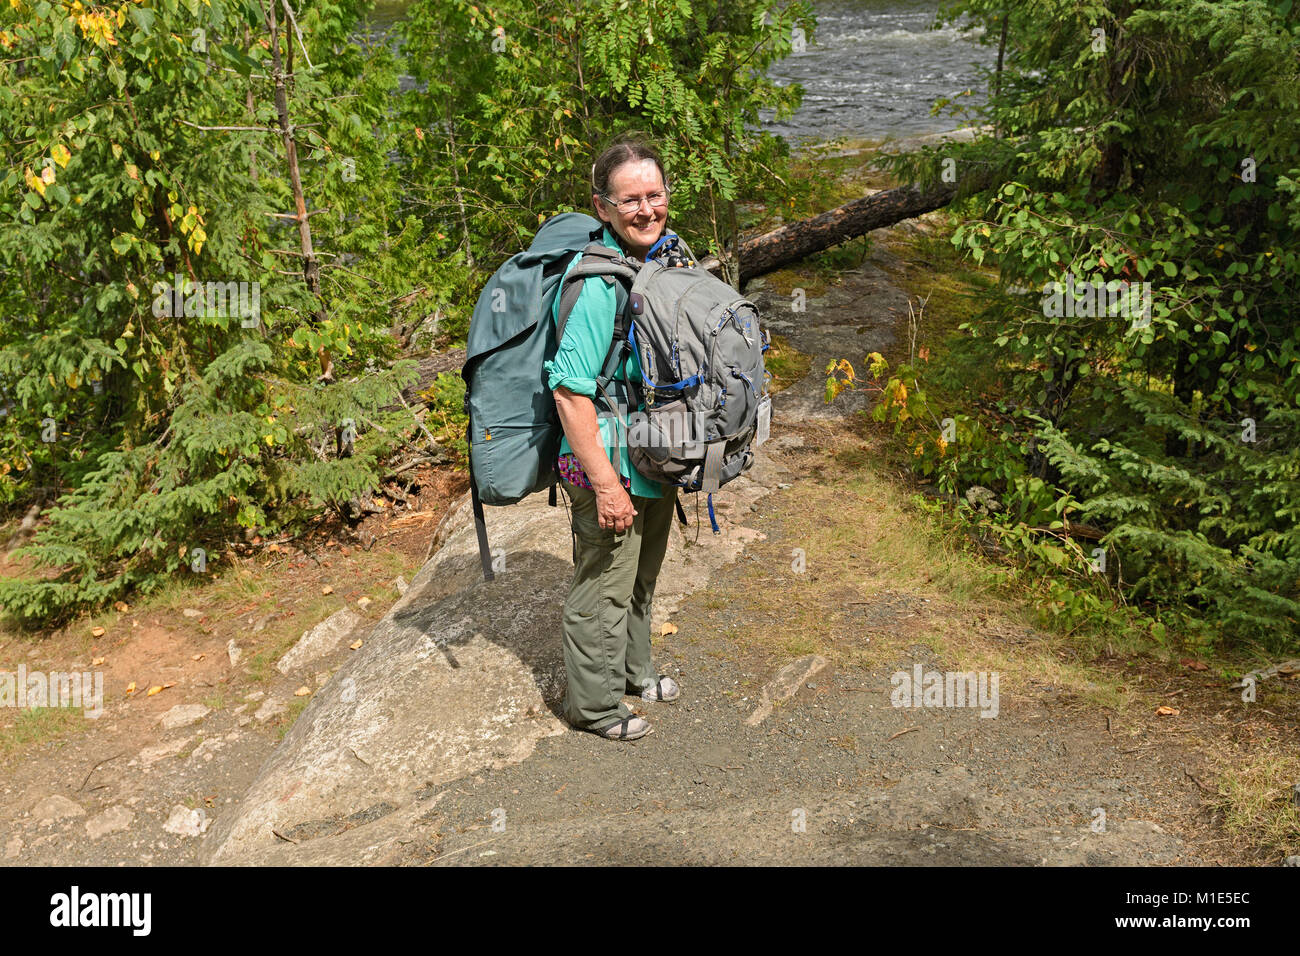 On a Wilderness Portage in Quetico Provincial Park in Ontario - Stock Image